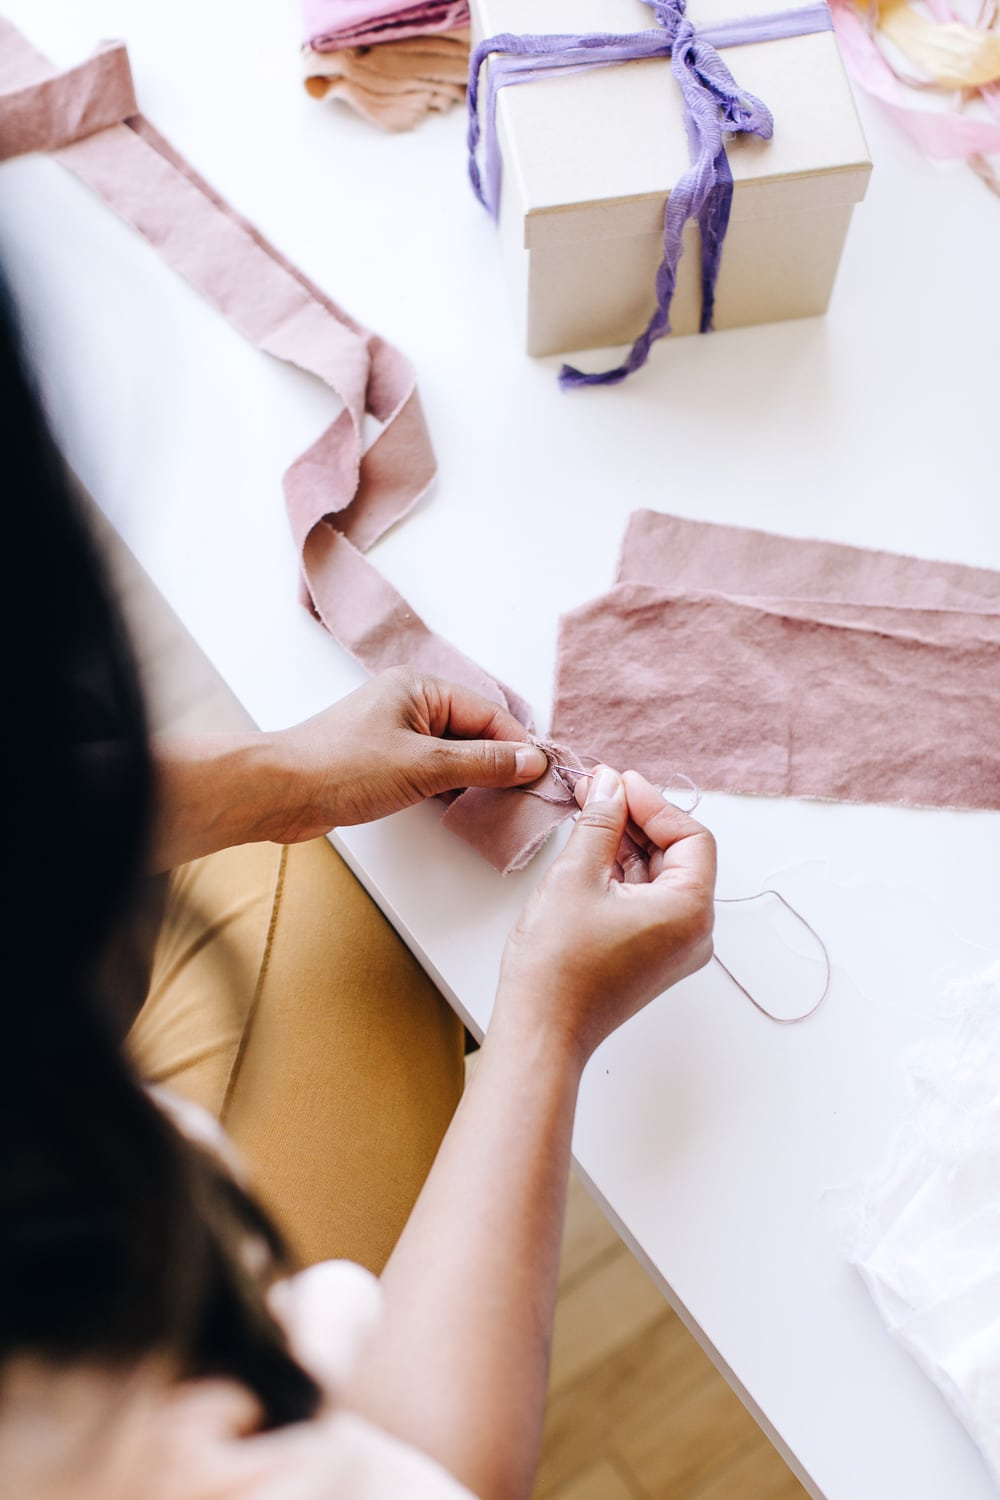 A Naturally Dyed Ribbons Workshop with Chrysteen Borja | The Crafter's Box